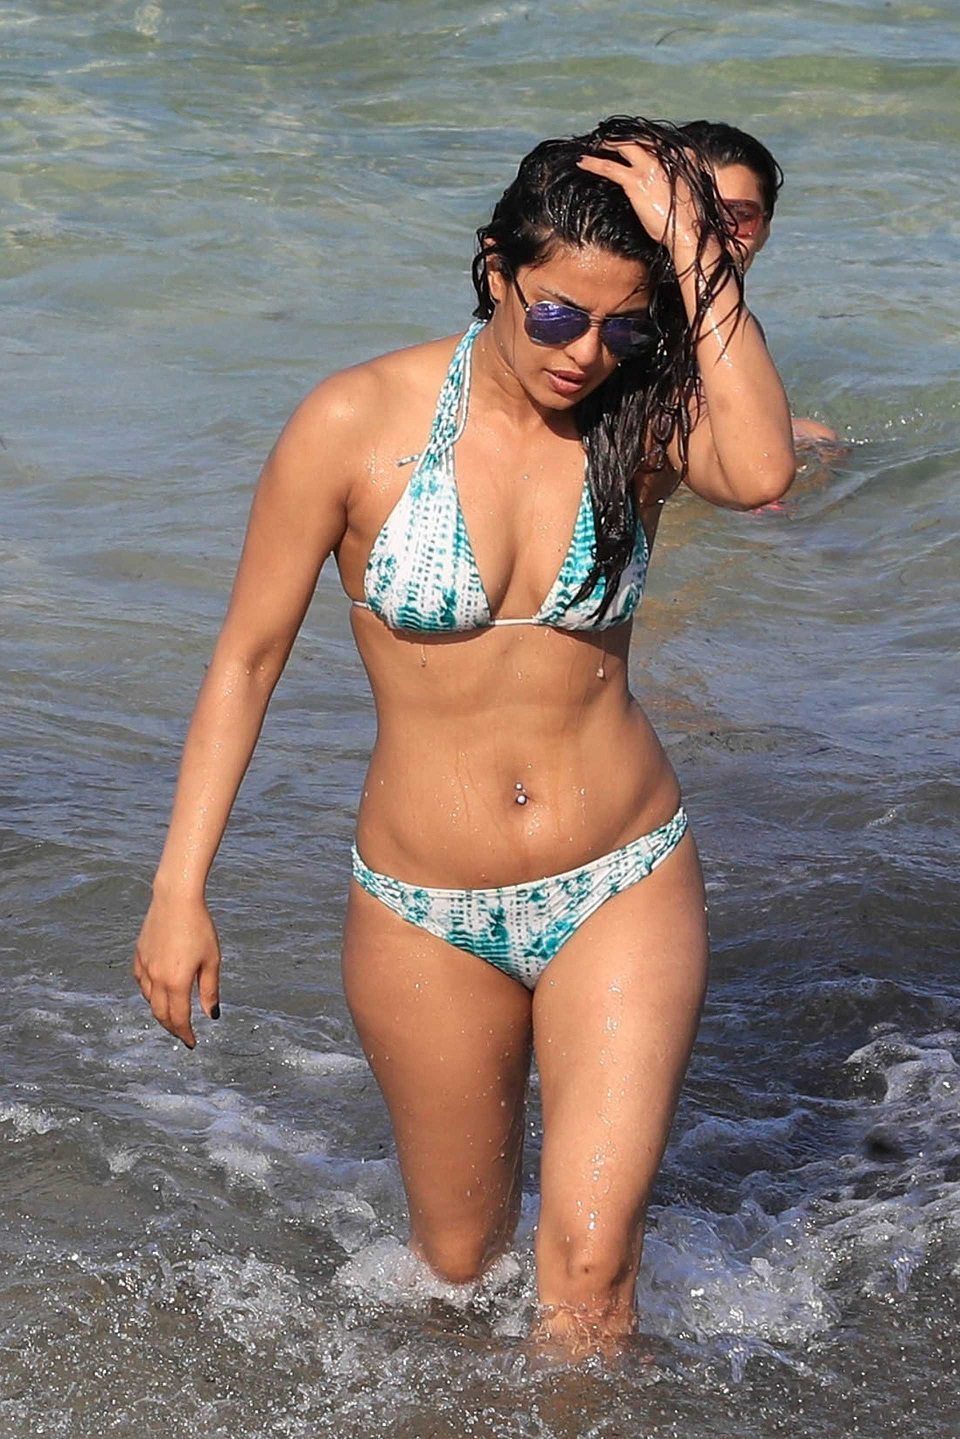 Priyanka Chopra parades in skimpy bikini on Miami beach